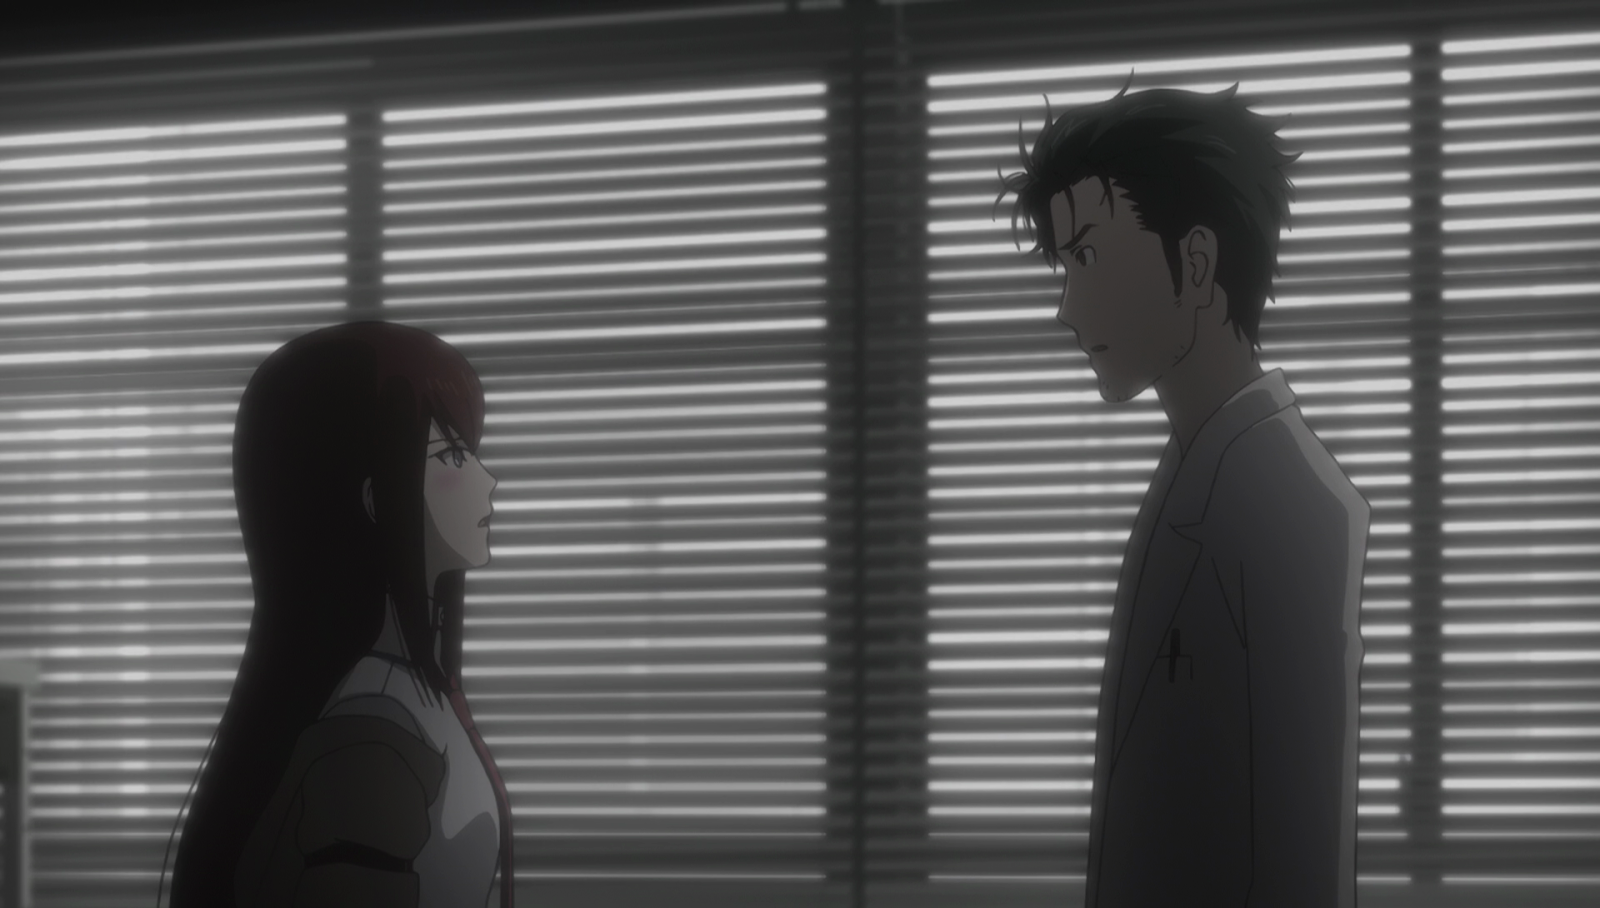 Redqstudios steinsgate qs anime review commentary p 2